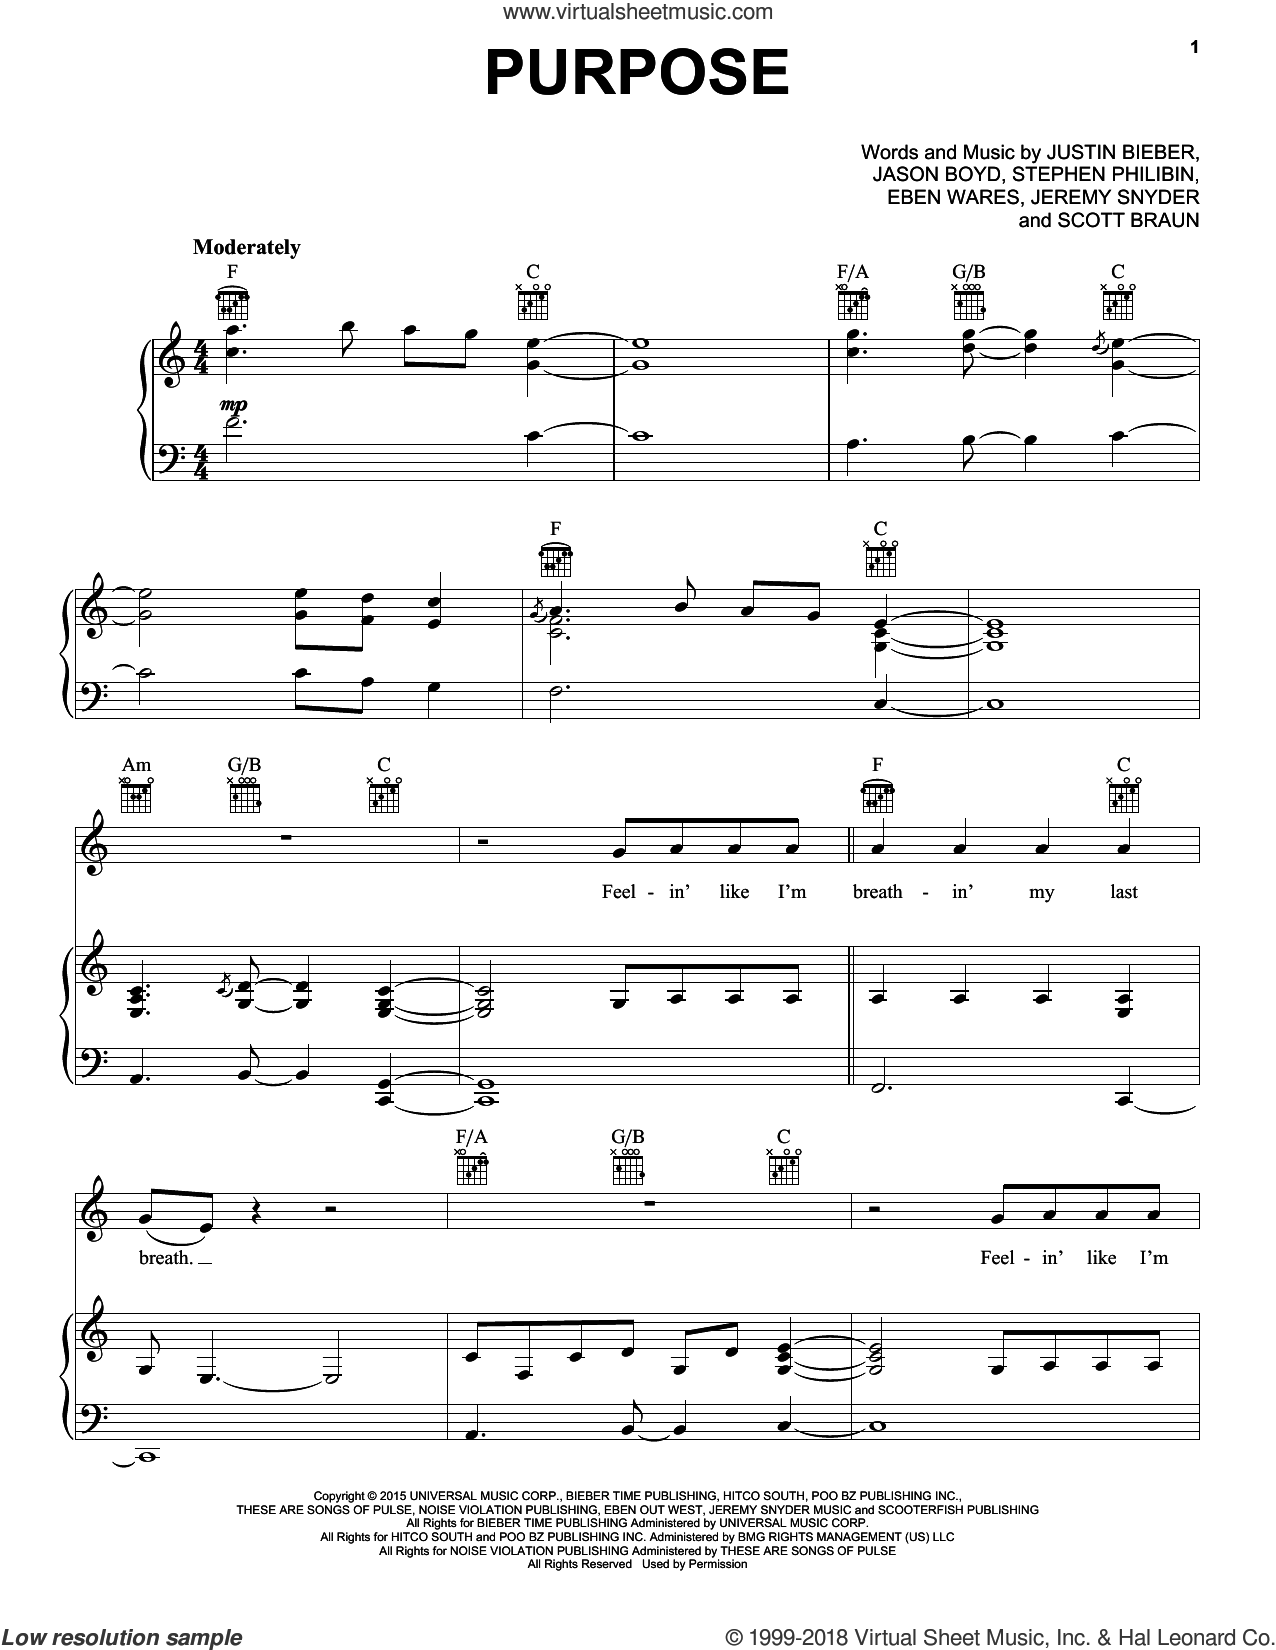 Purpose sheet music for voice, piano or guitar by Justin Bieber, Eben Wares, Jason Boyd, Jeremy Snyder, Scott Braun and Stephen Philibin, intermediate skill level